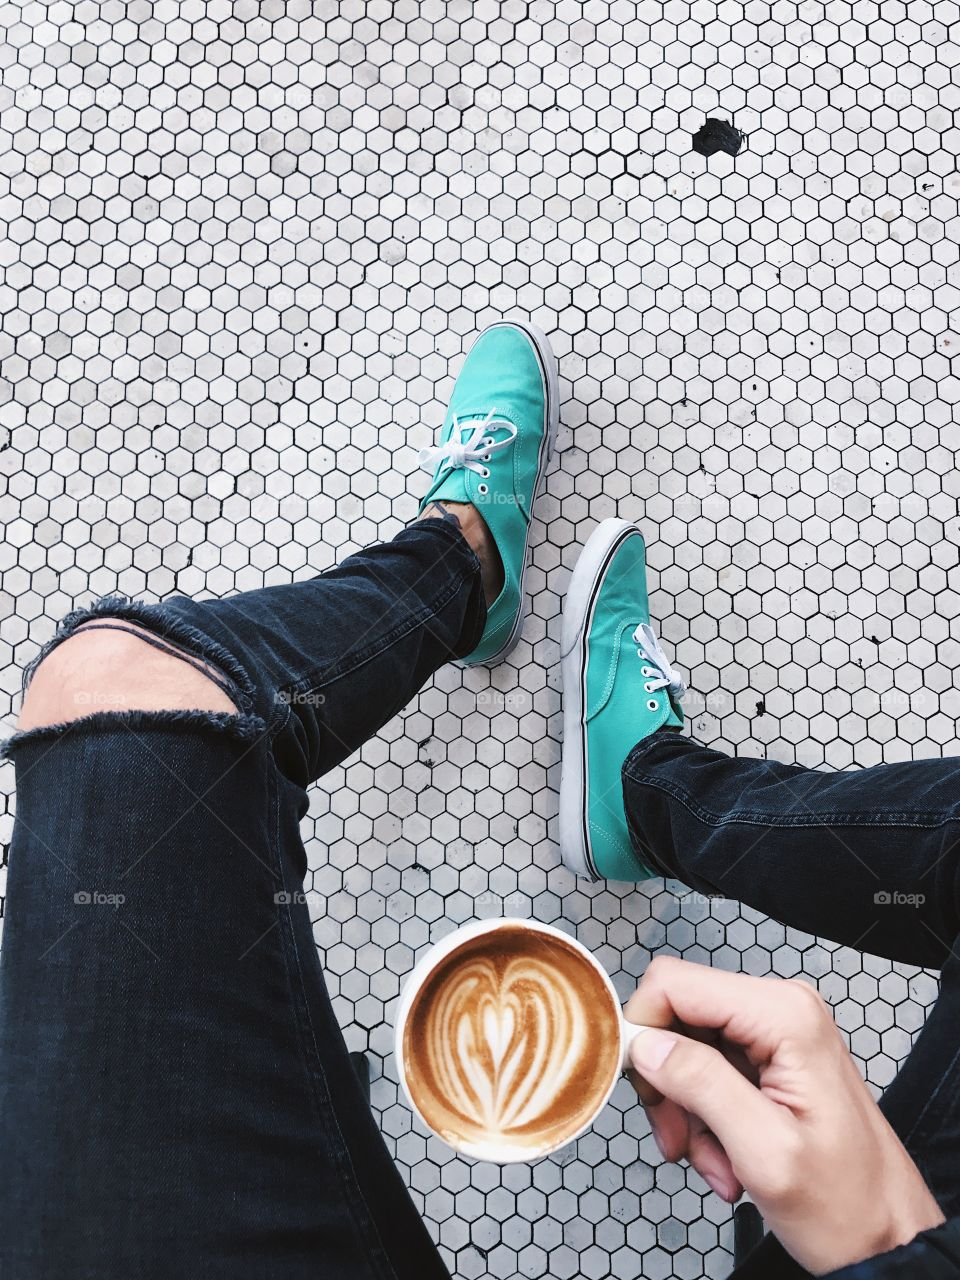 Coffee and feet on a cool tiled floor.